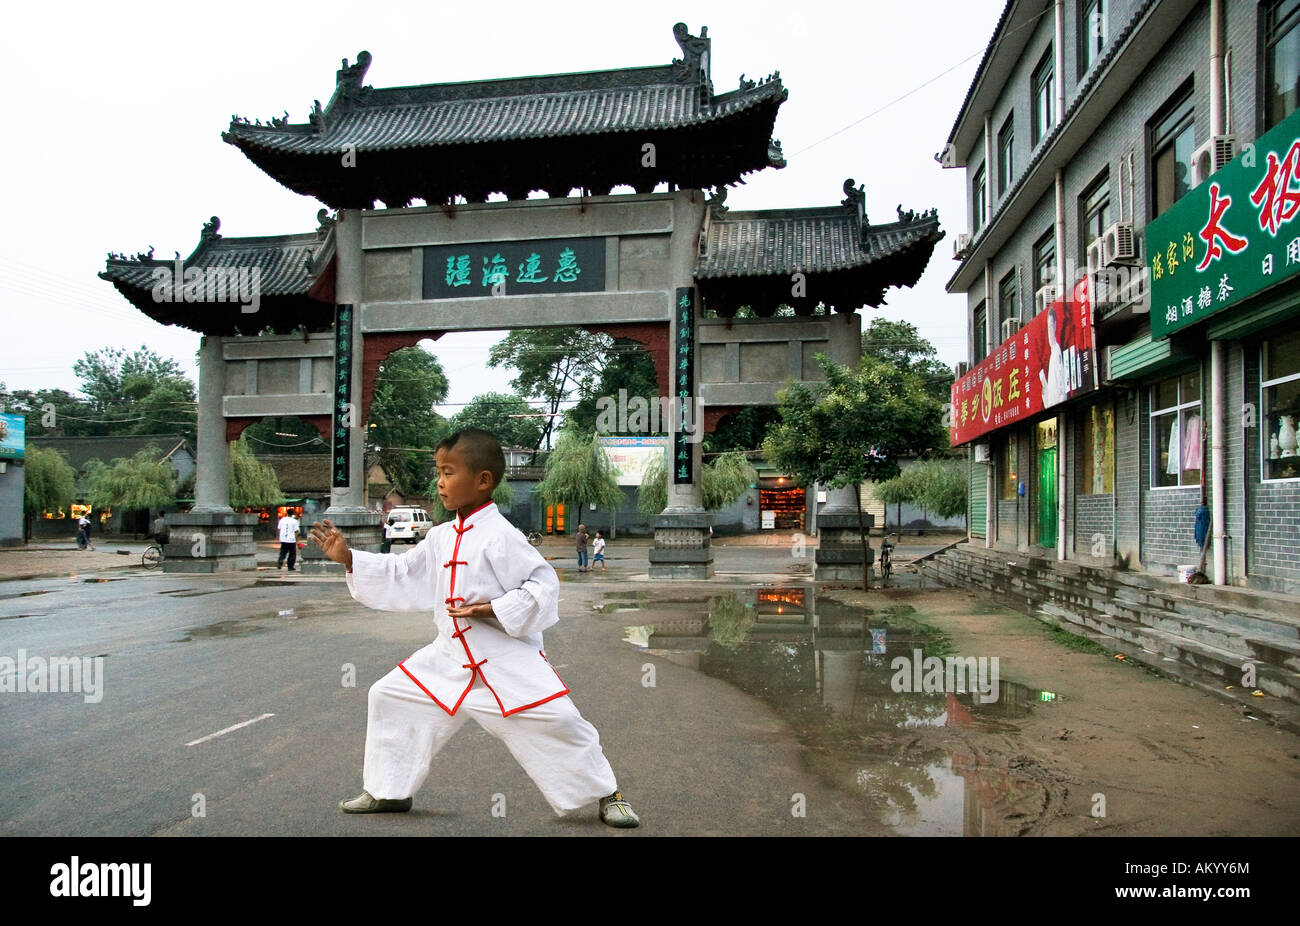 Child, Taji, Village square, Chenjiagou, Henan, China - Stock Image